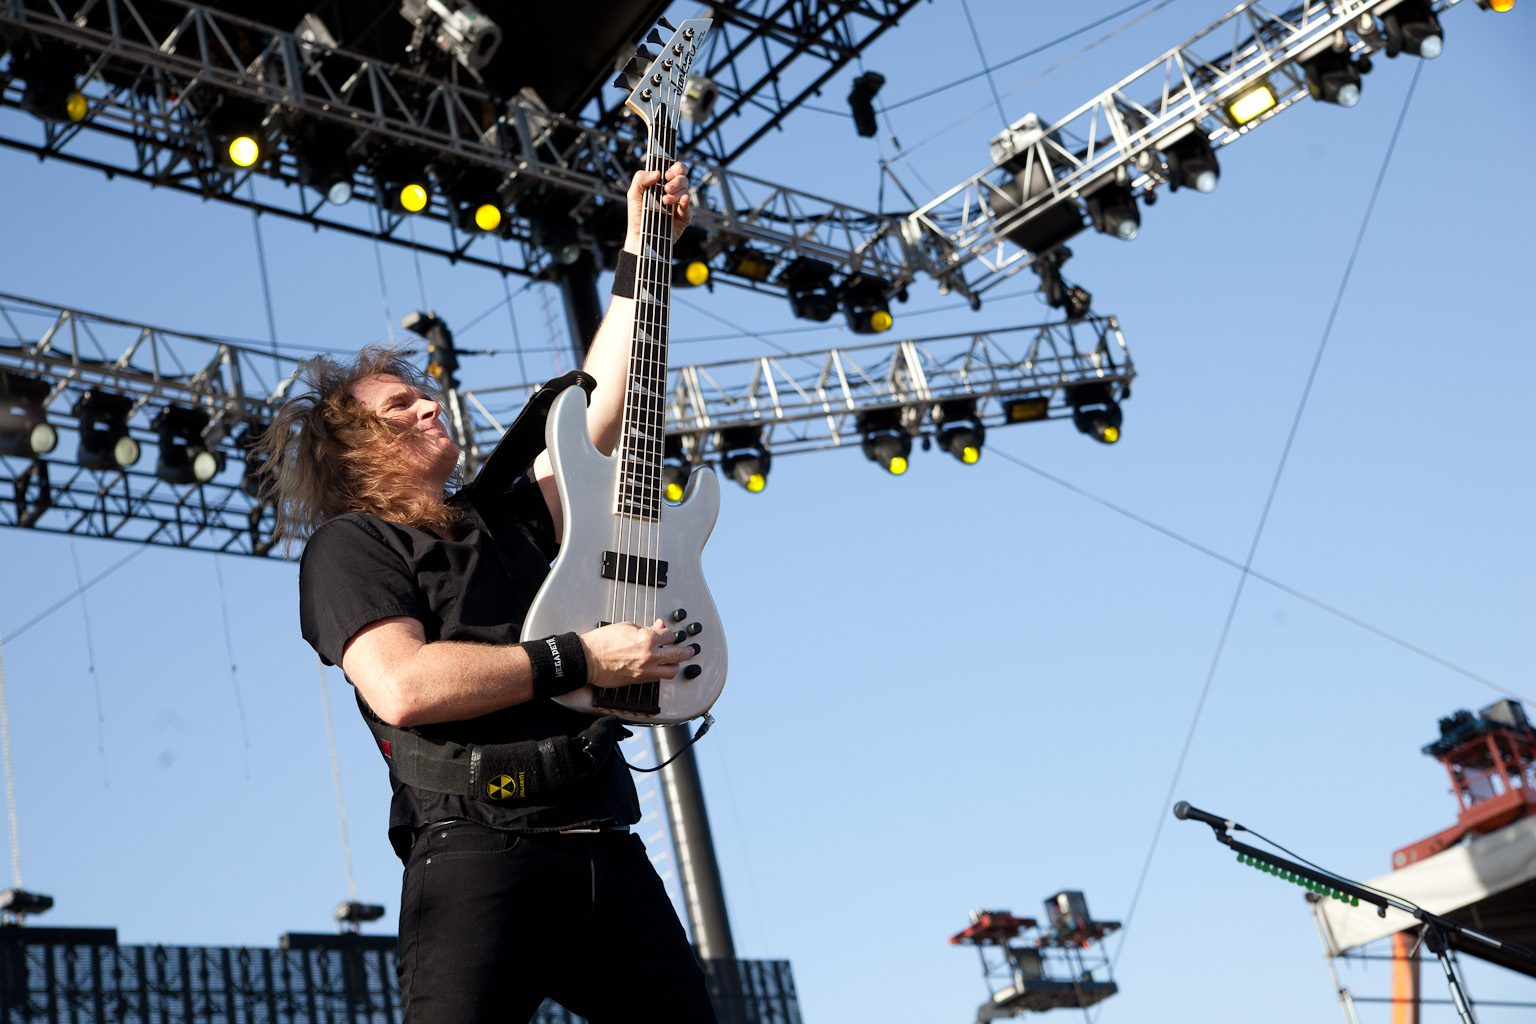 Dave Ellefson Gave Up Ownership Stake In Megadeth, Is Technically A Salaried Employee Of Band